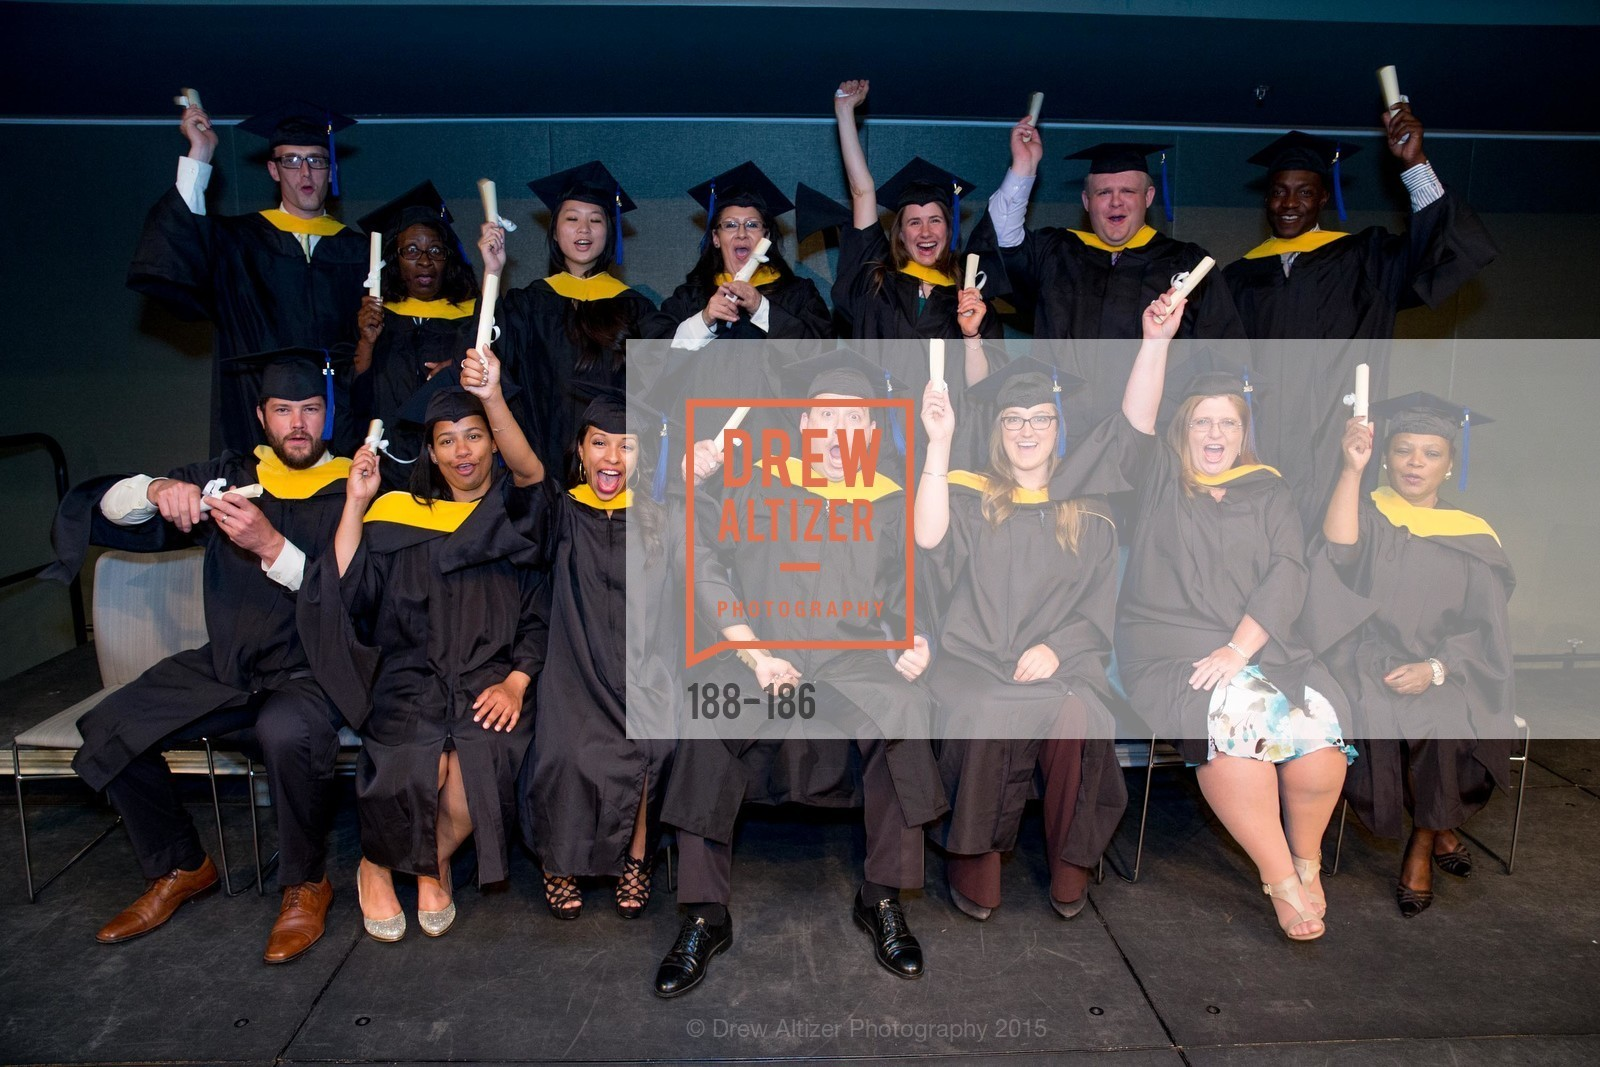 MSTM Graduating Class of 2015, Photo #188-186